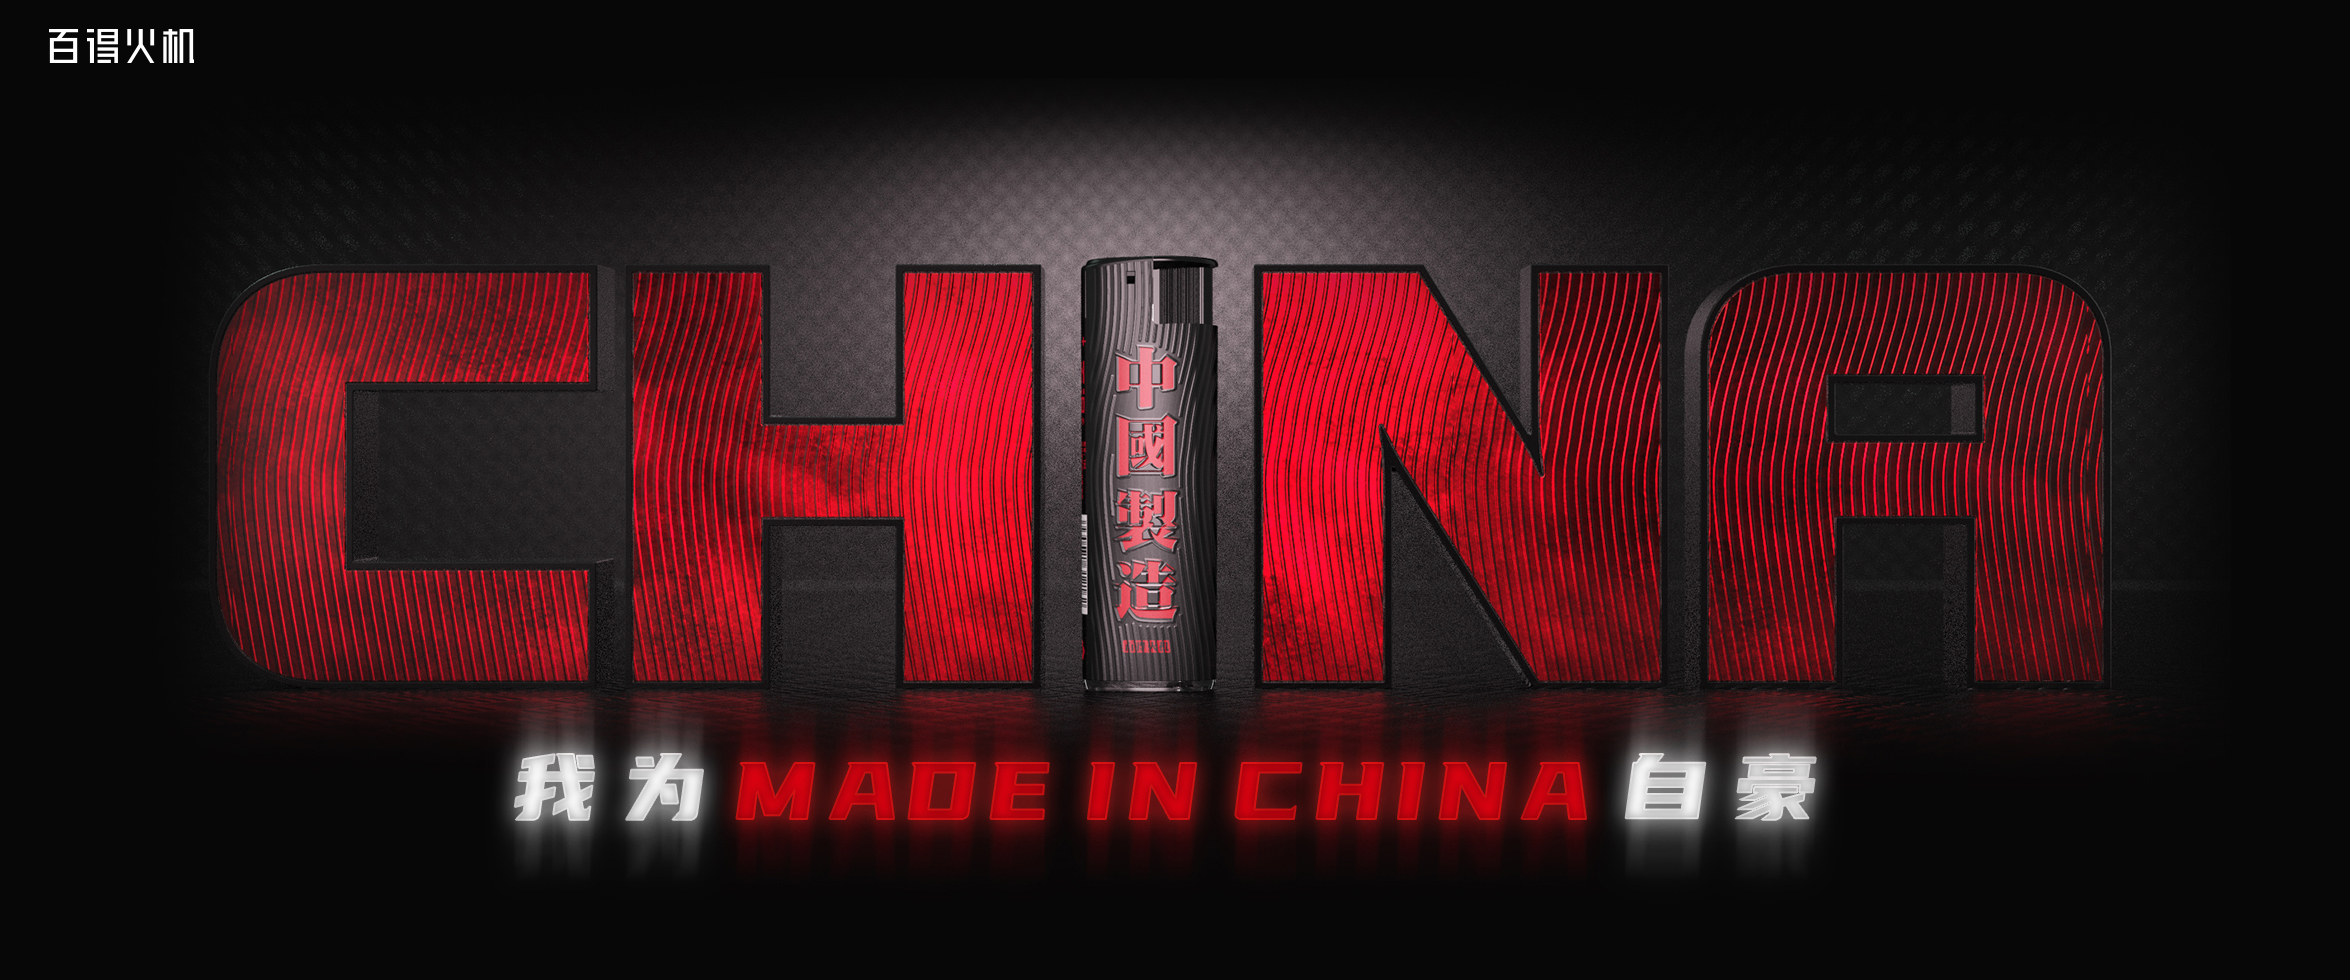 I am proud of made in China.